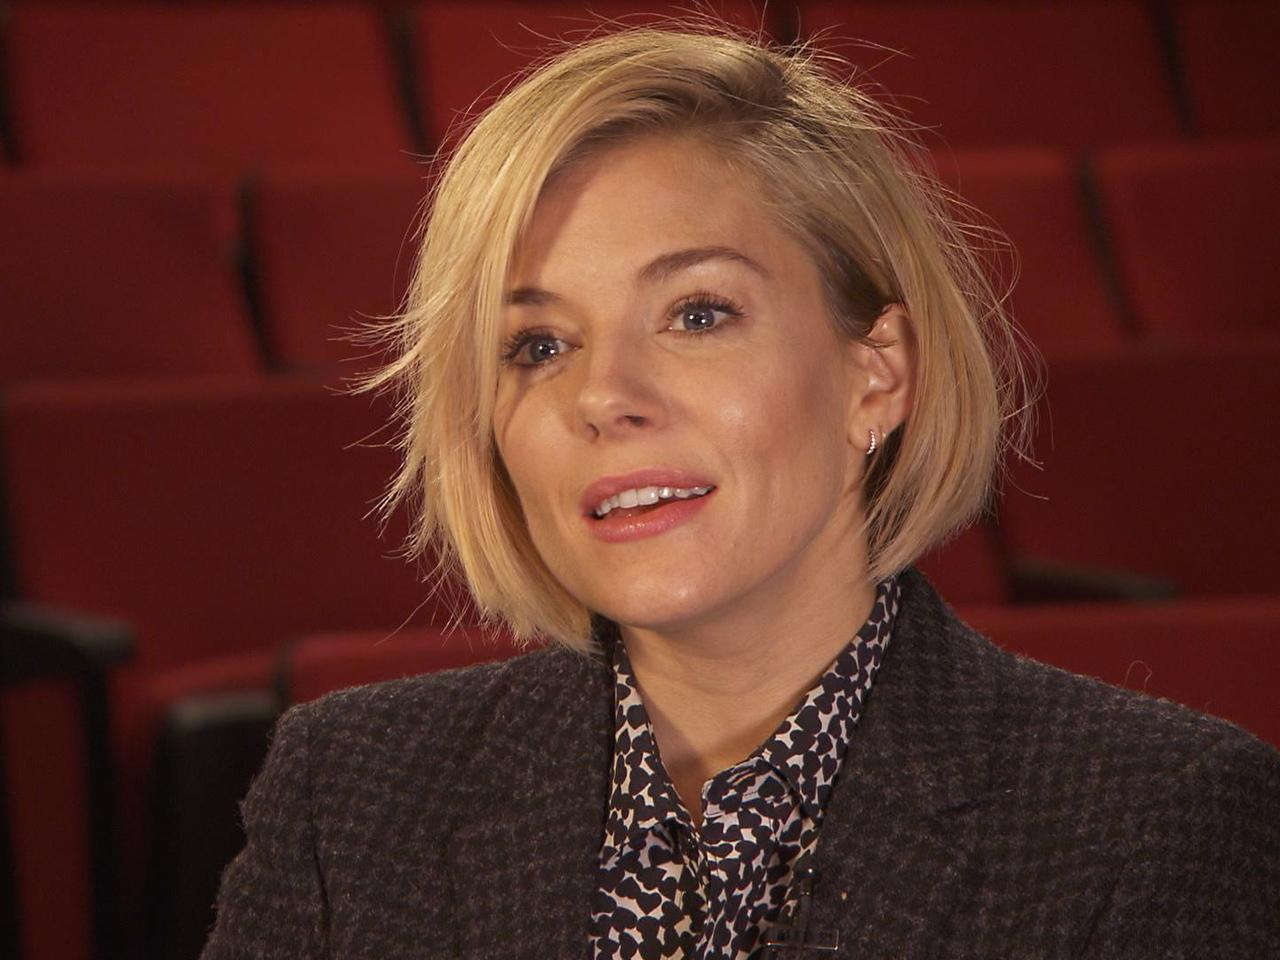 A new chapter for Sienna Miller